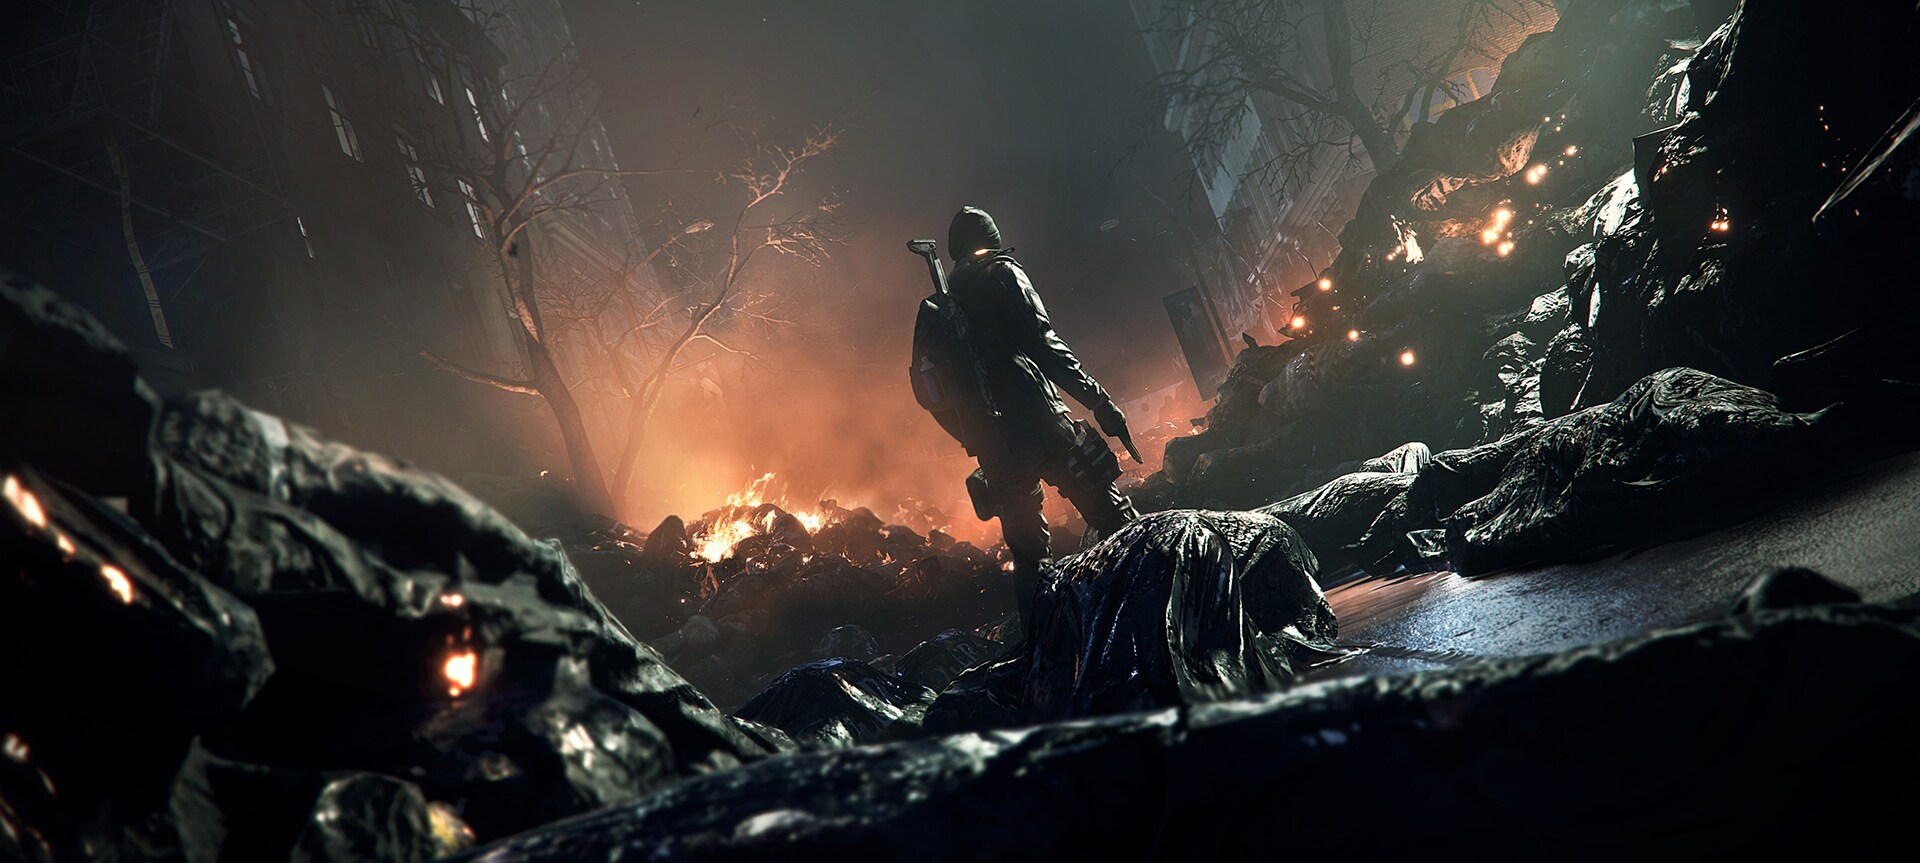 Tom Clancy's The Division Steam Key GLOBAL - 4